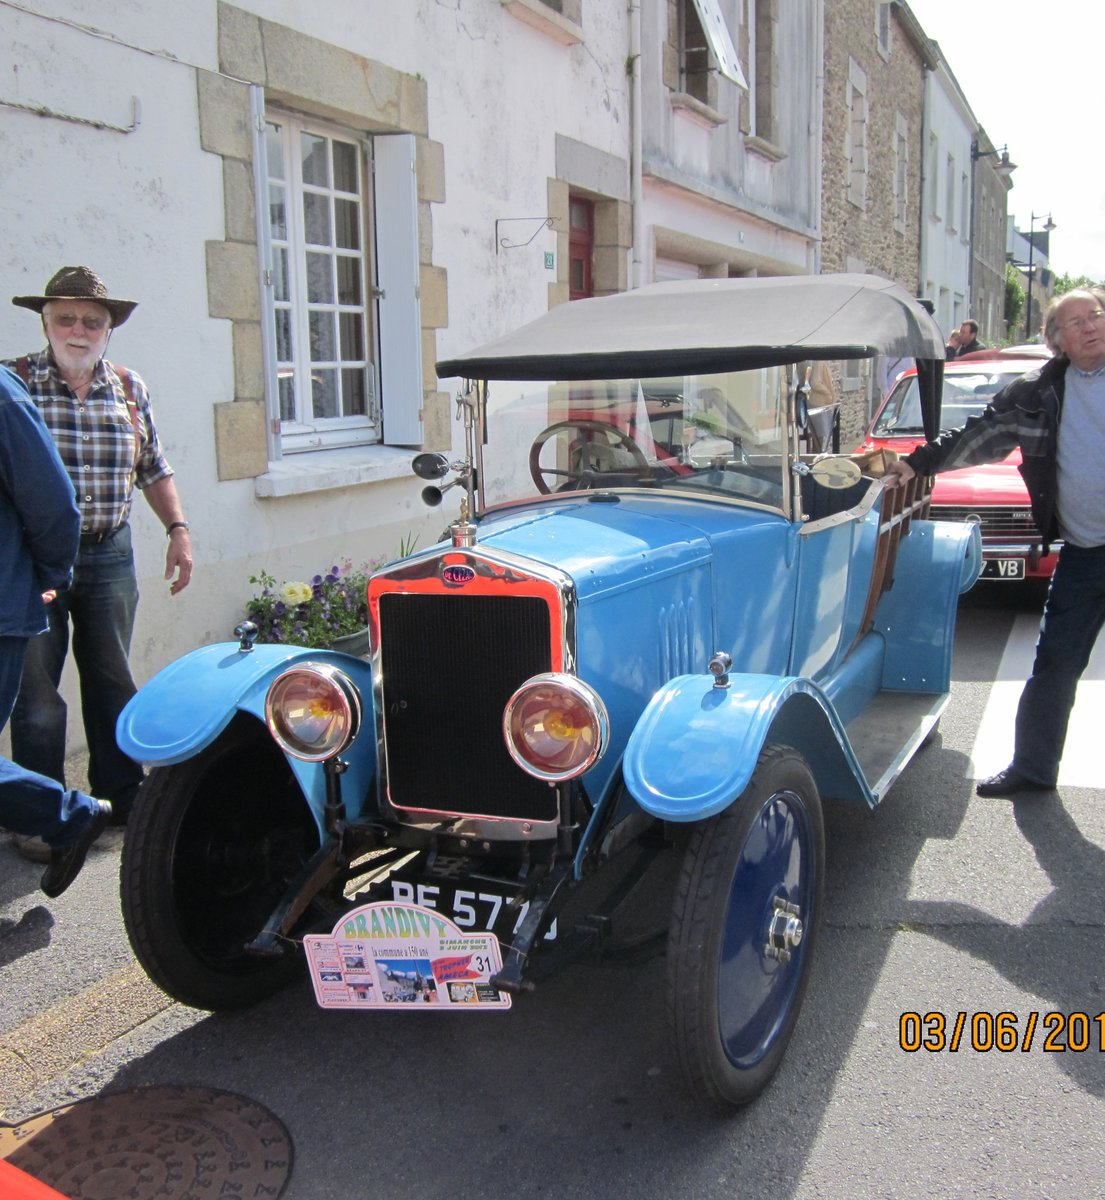 1925 De Cezac camionette vintage French pick-up For Sale (picture 3 of 6)